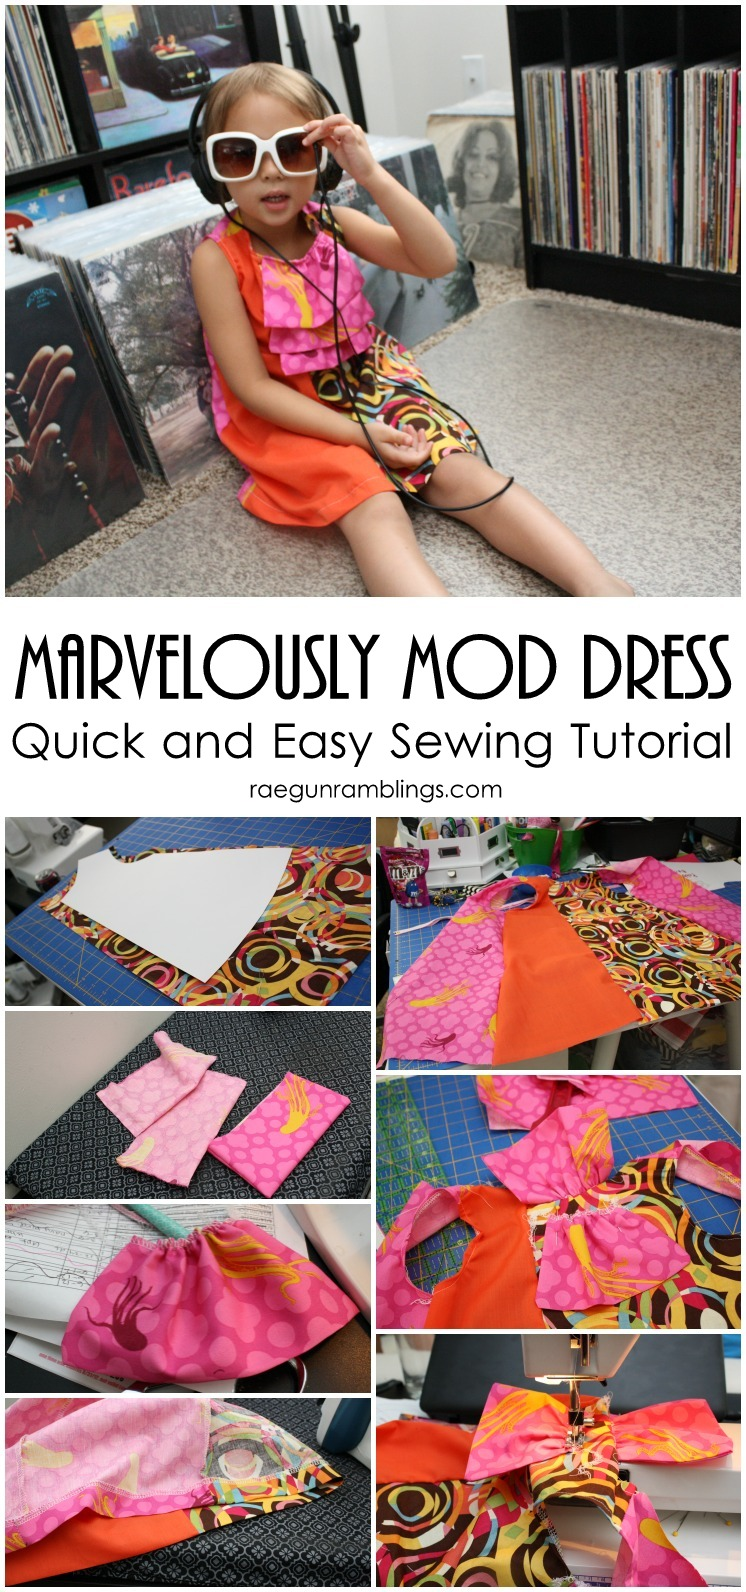 Easy to follow tutorial for DIY mod dress. Great sewing project